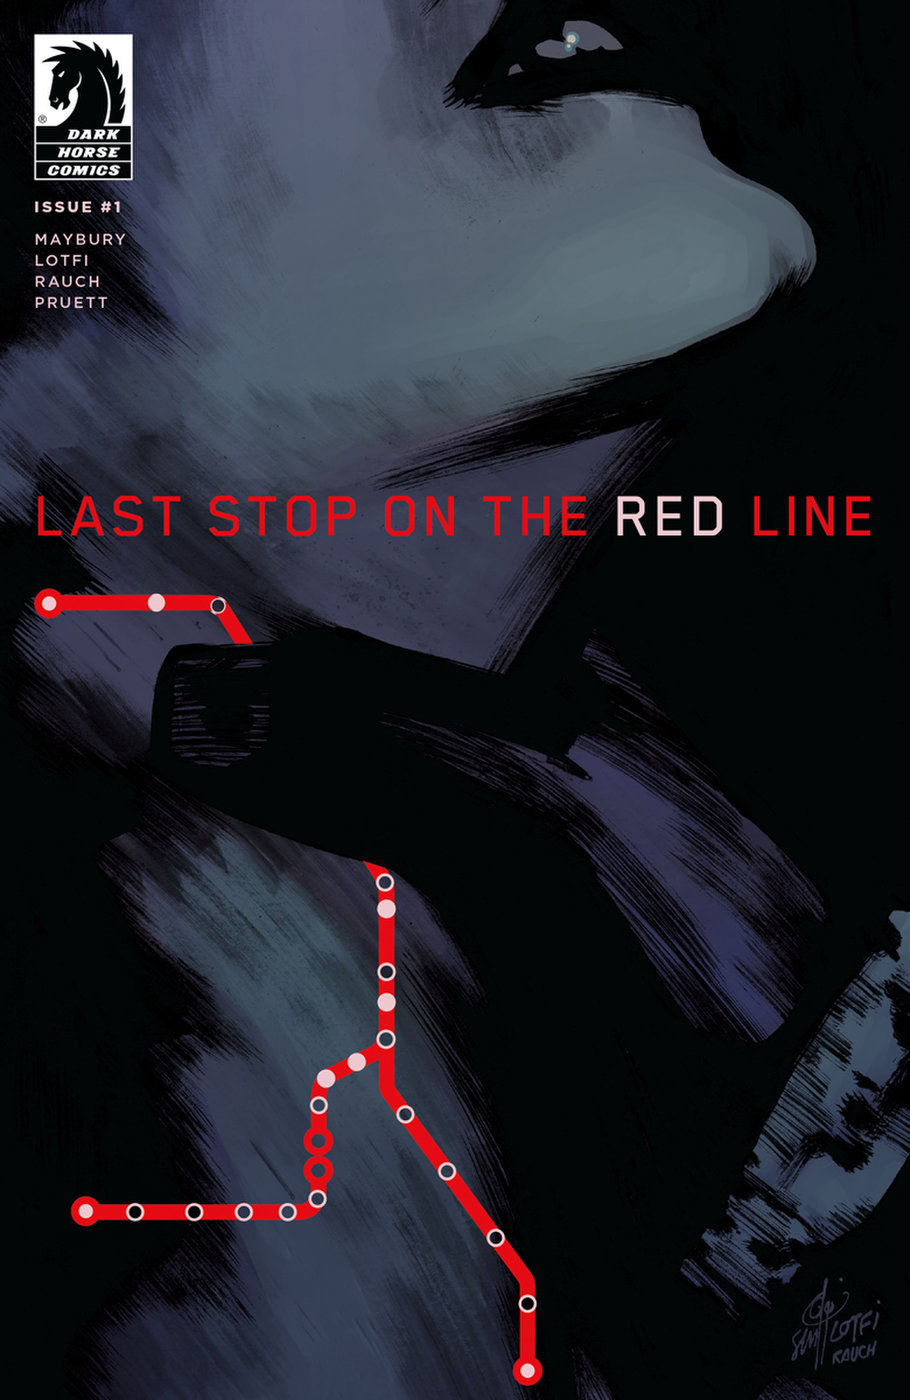 LAST STOP on the RED LINE Cover #1 - Dark Horse Comics